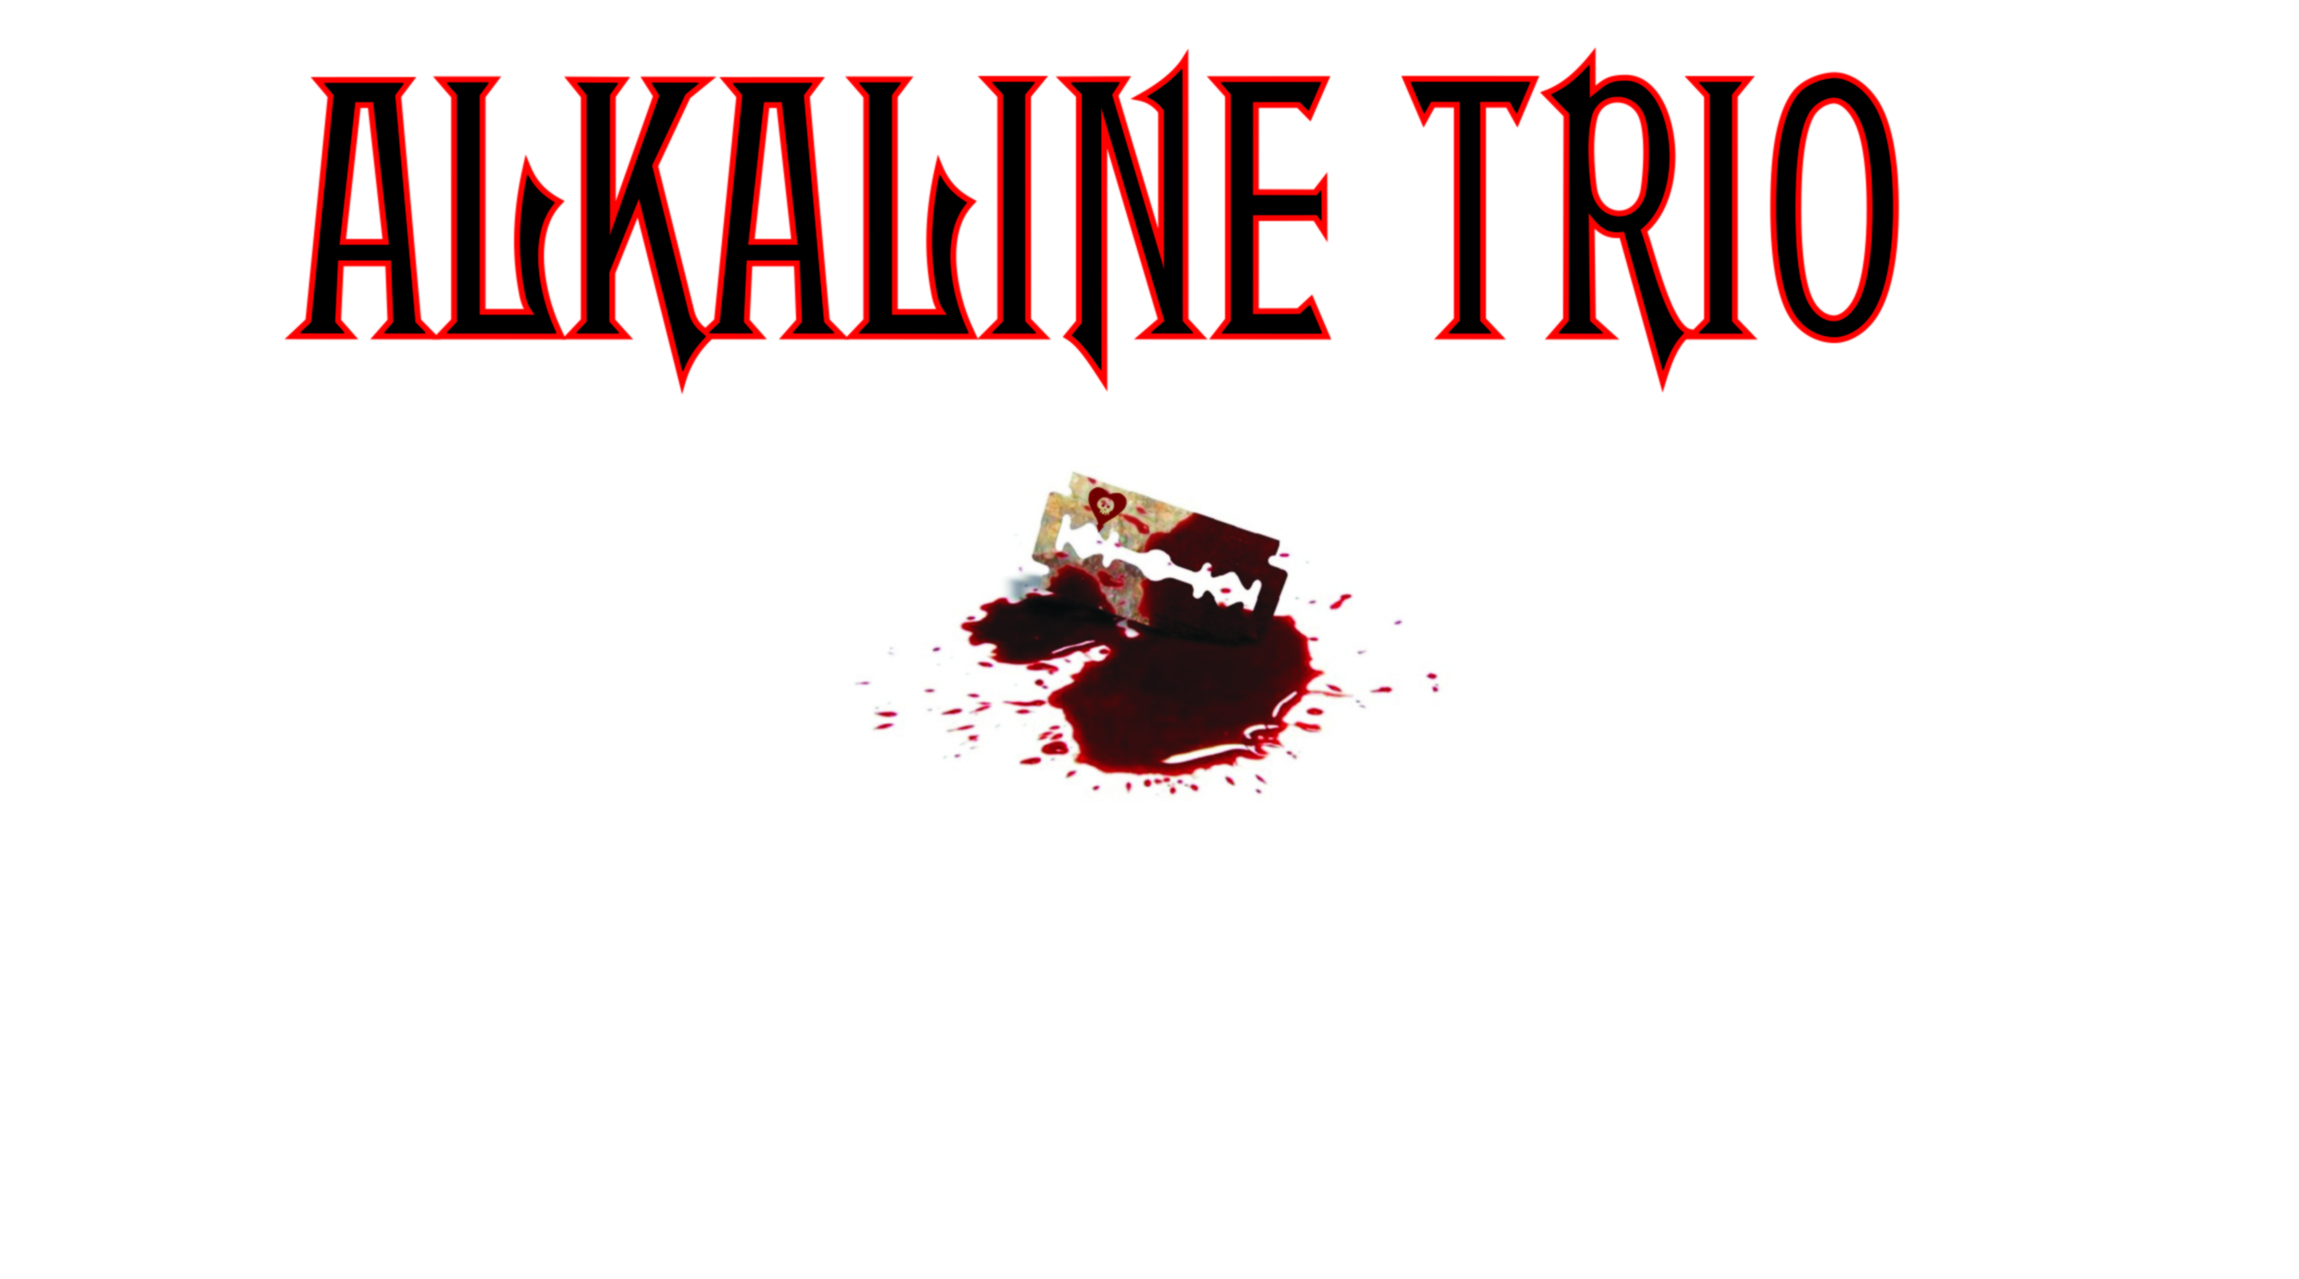 Alkaline Trio images Alkaline Trio Wallpaper HD wallpaper and background  photos